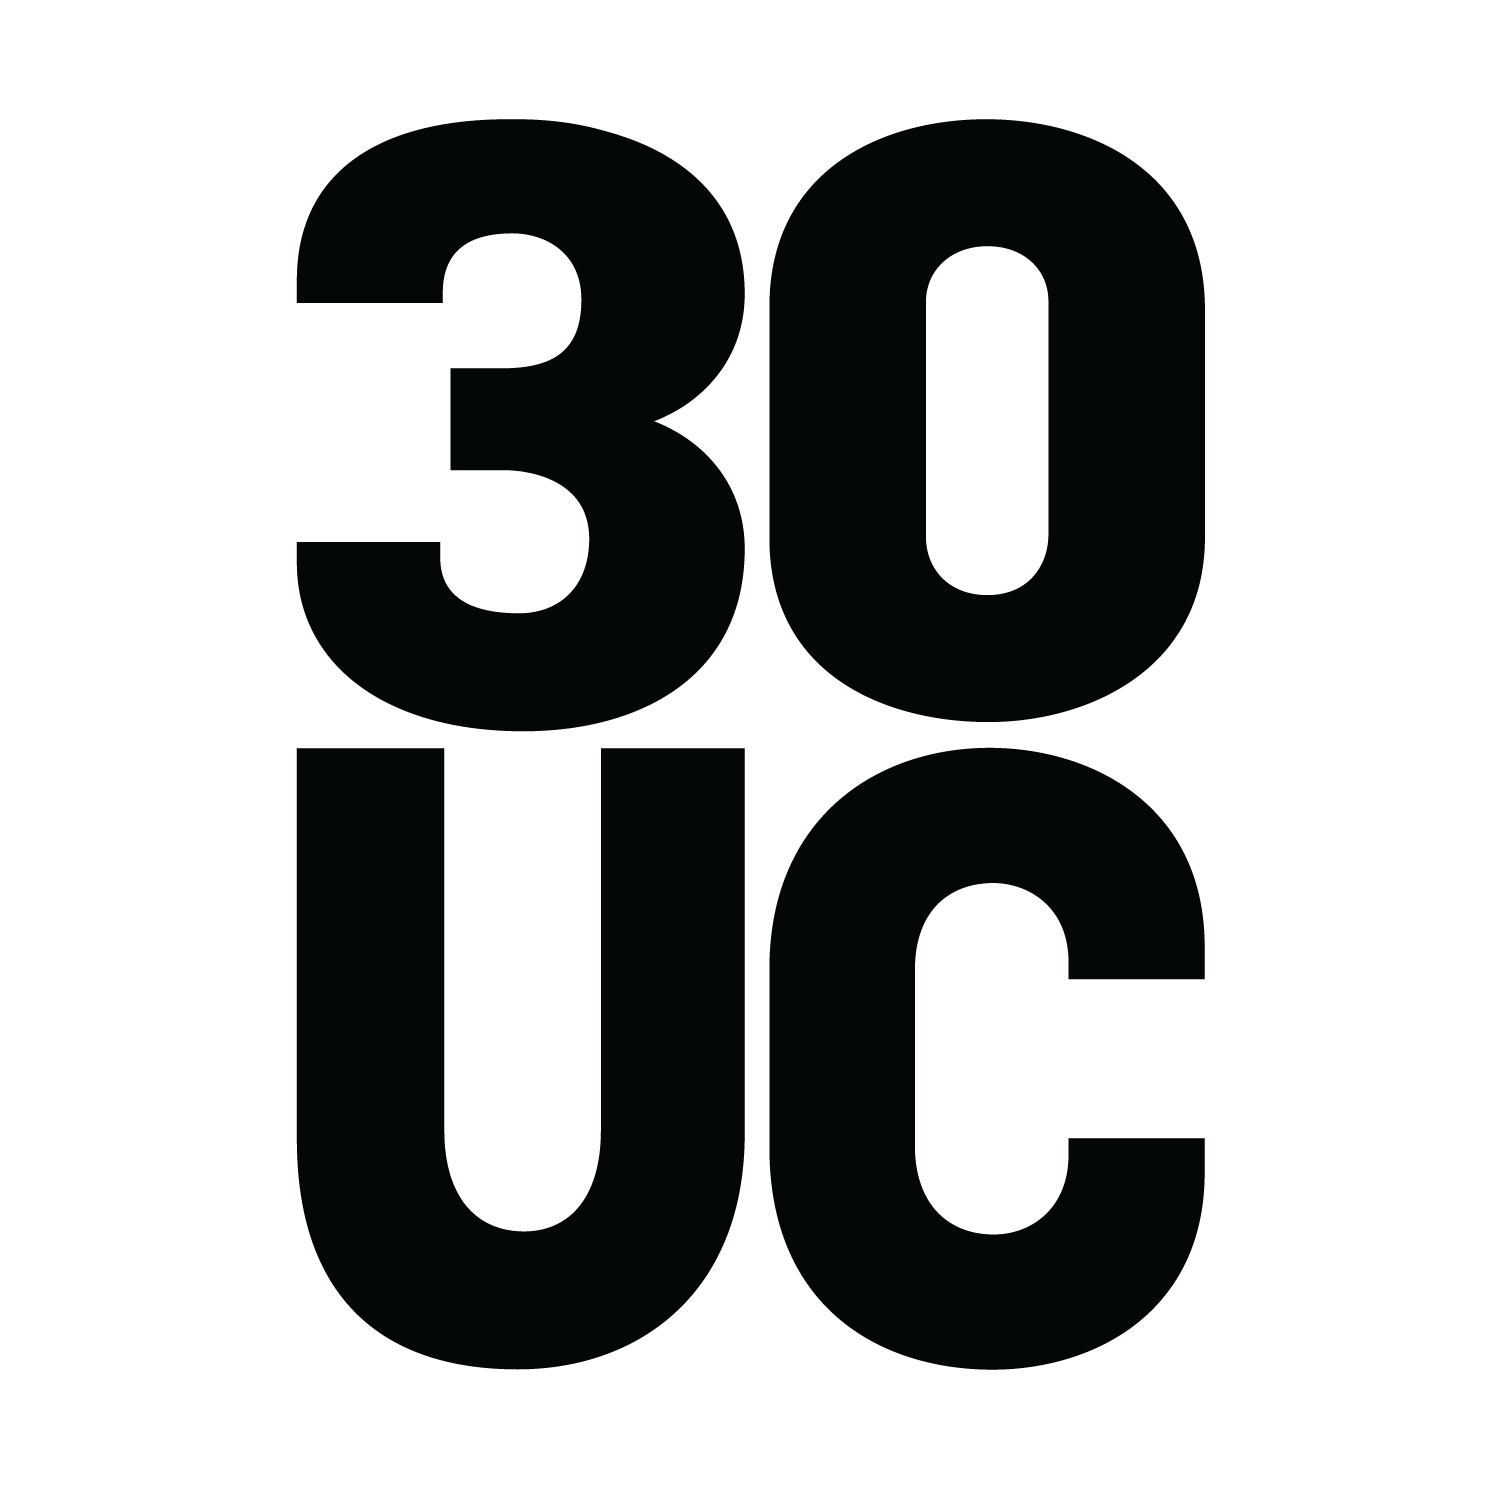 30UC logo black and white